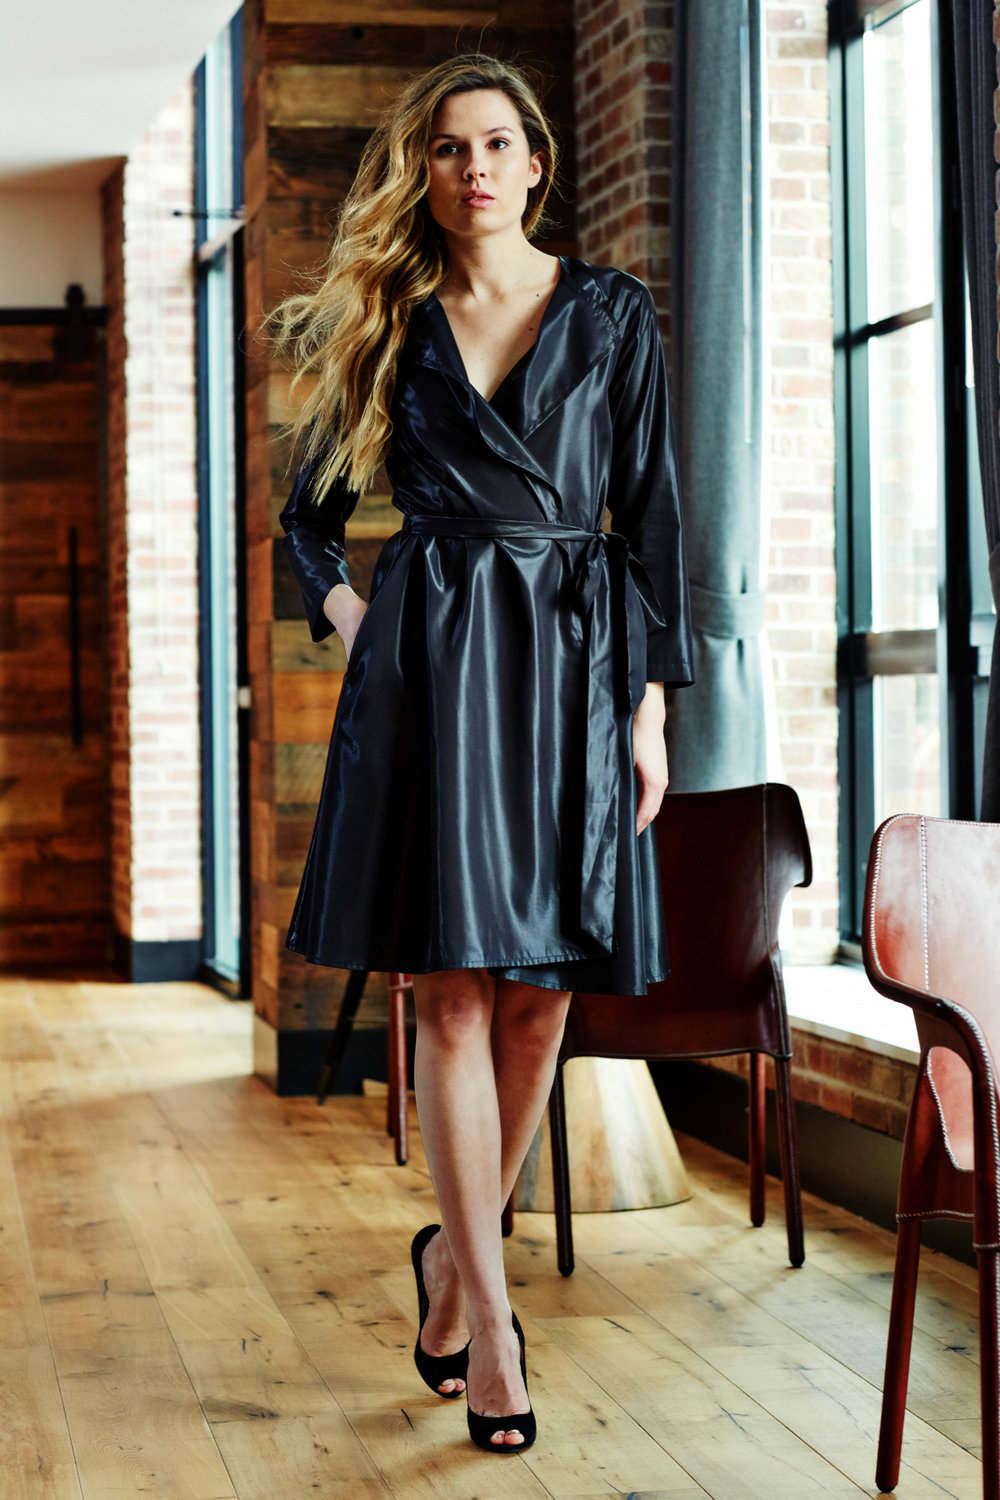 Minika-Ko-Kovasky-Collection-Lookbook-Fashion-Performance-Fabrics-Black-Shiny-Trench-Coat-Dress-with-Invisible-Pockets-Tie-Waist-Business-Casual-Career-Wear-Style.jpg